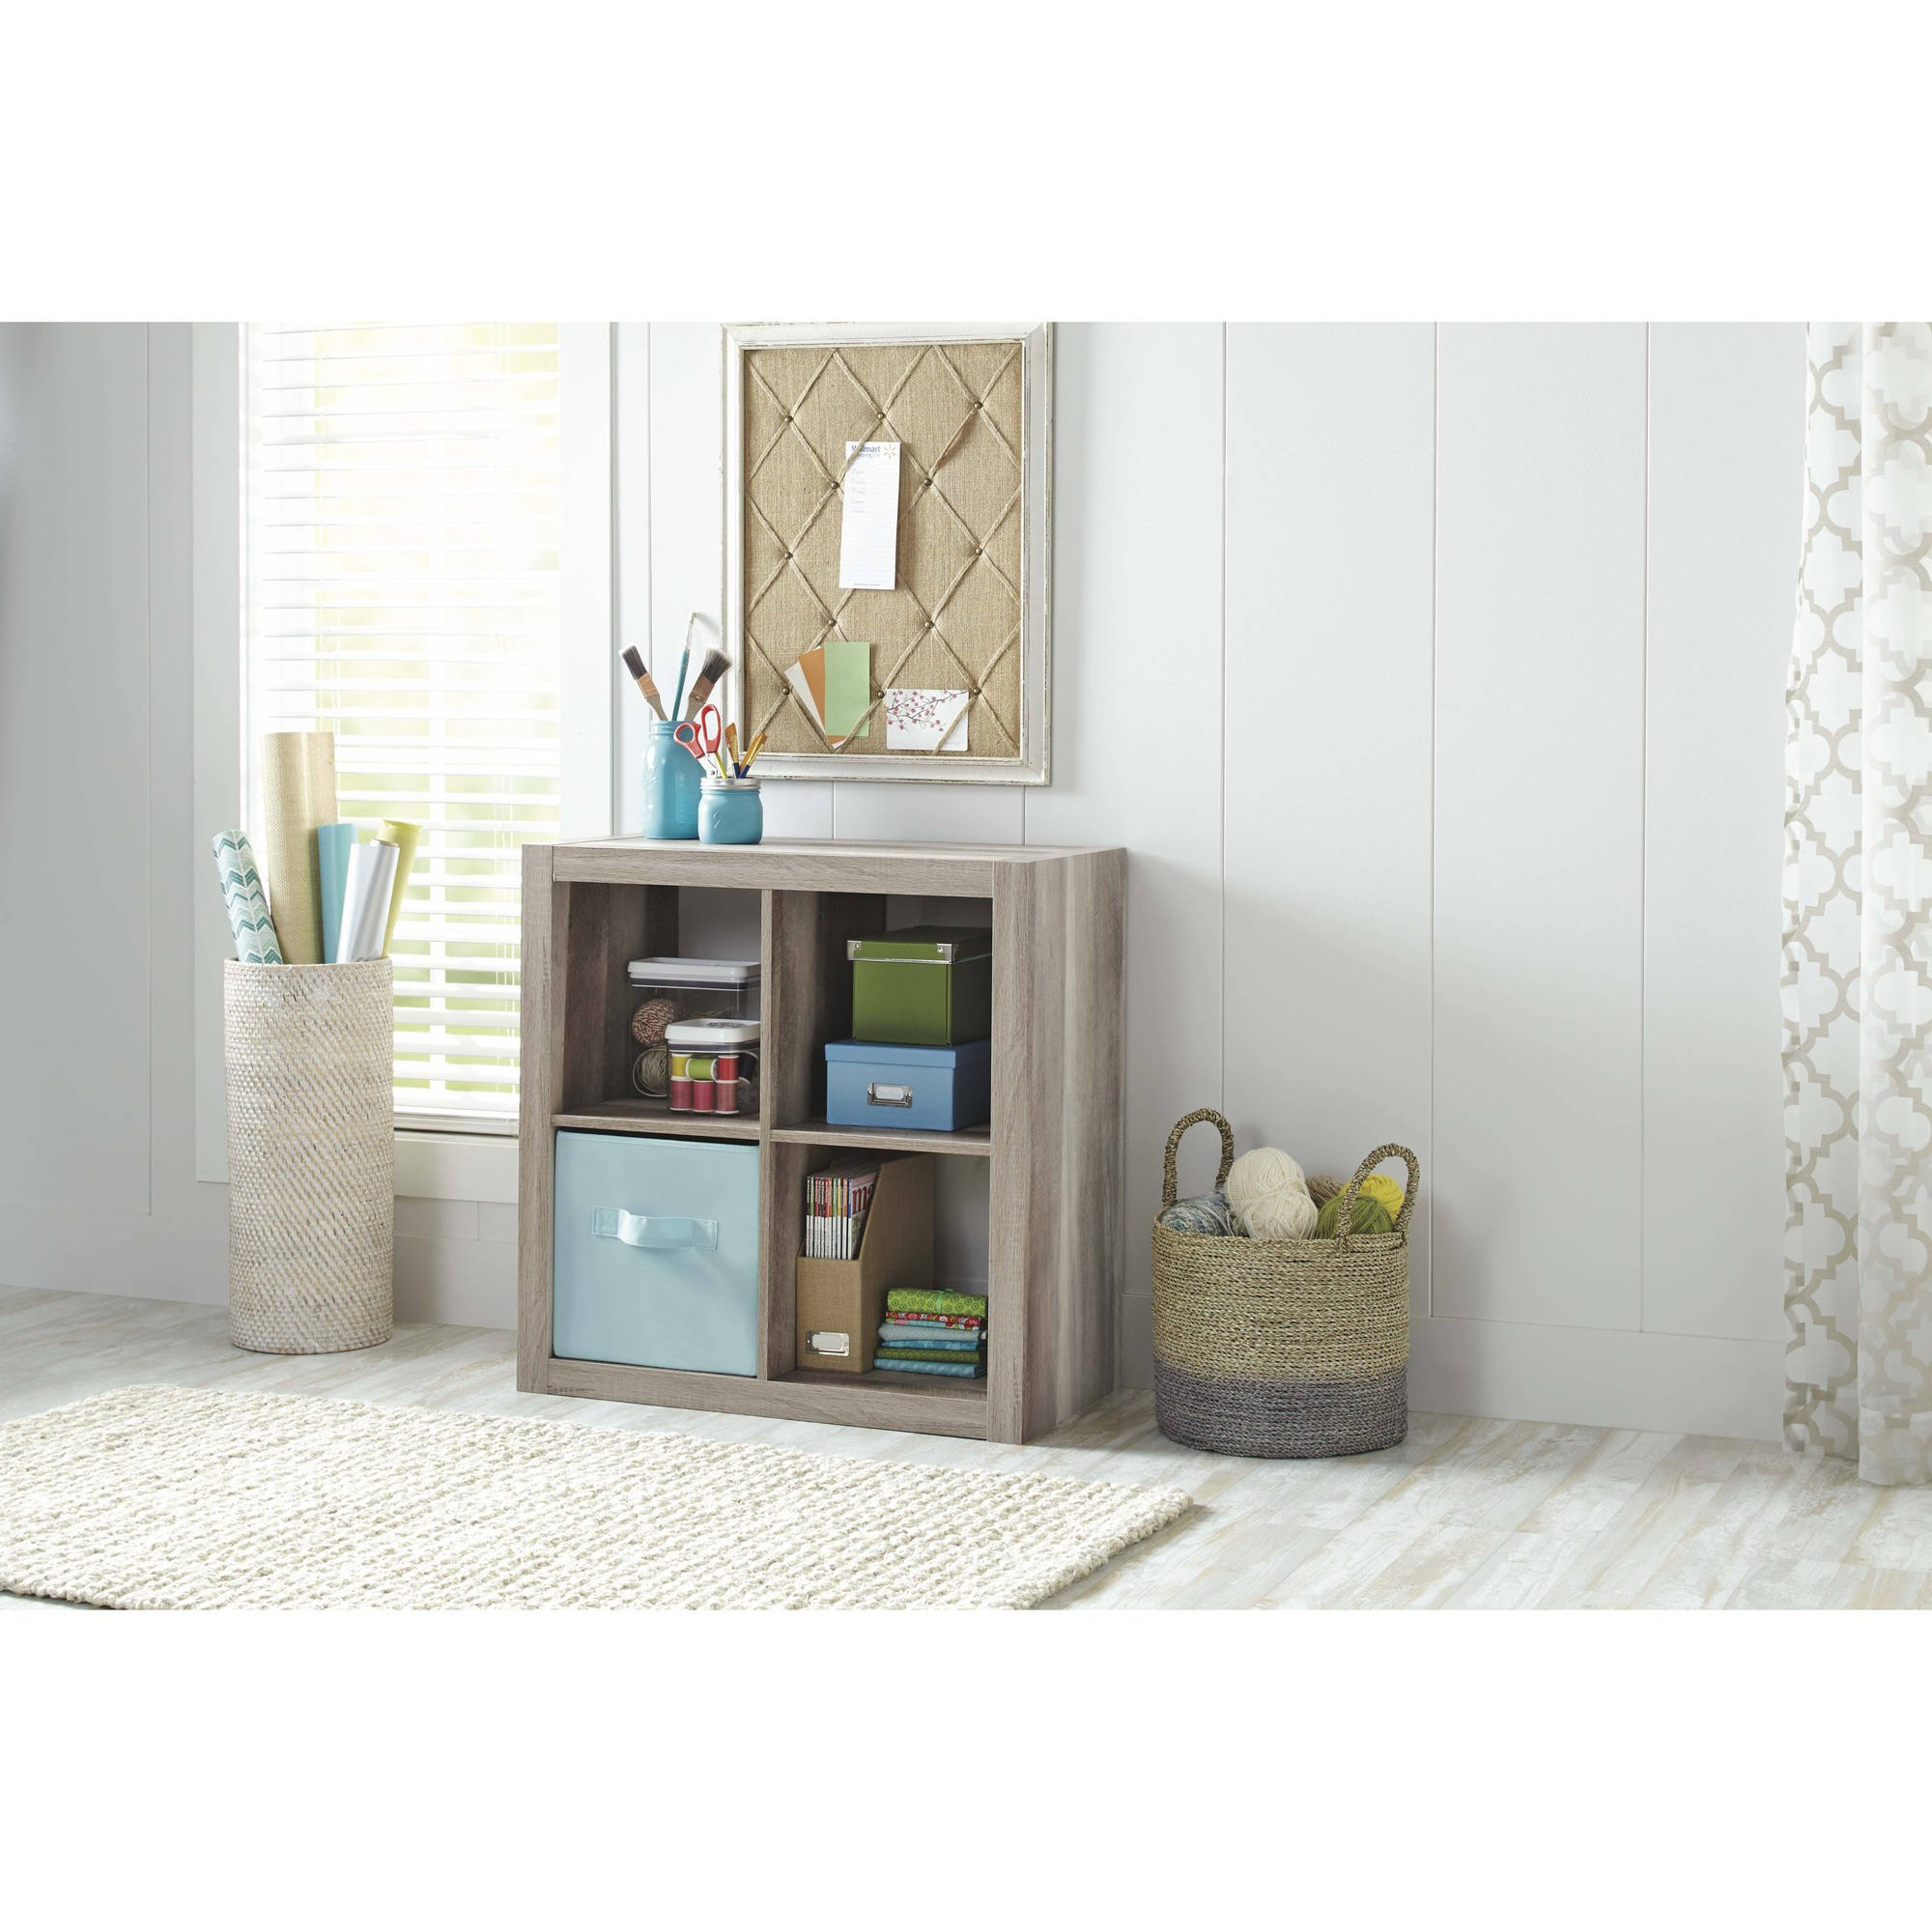 Versatile 4-Cube Storage Case for Organization and Display, Made of MDF and Laminated Particleboard, (Storage Bins and Other Extras NOT Included, Rustick Grey + Expert Home Guide by Love US